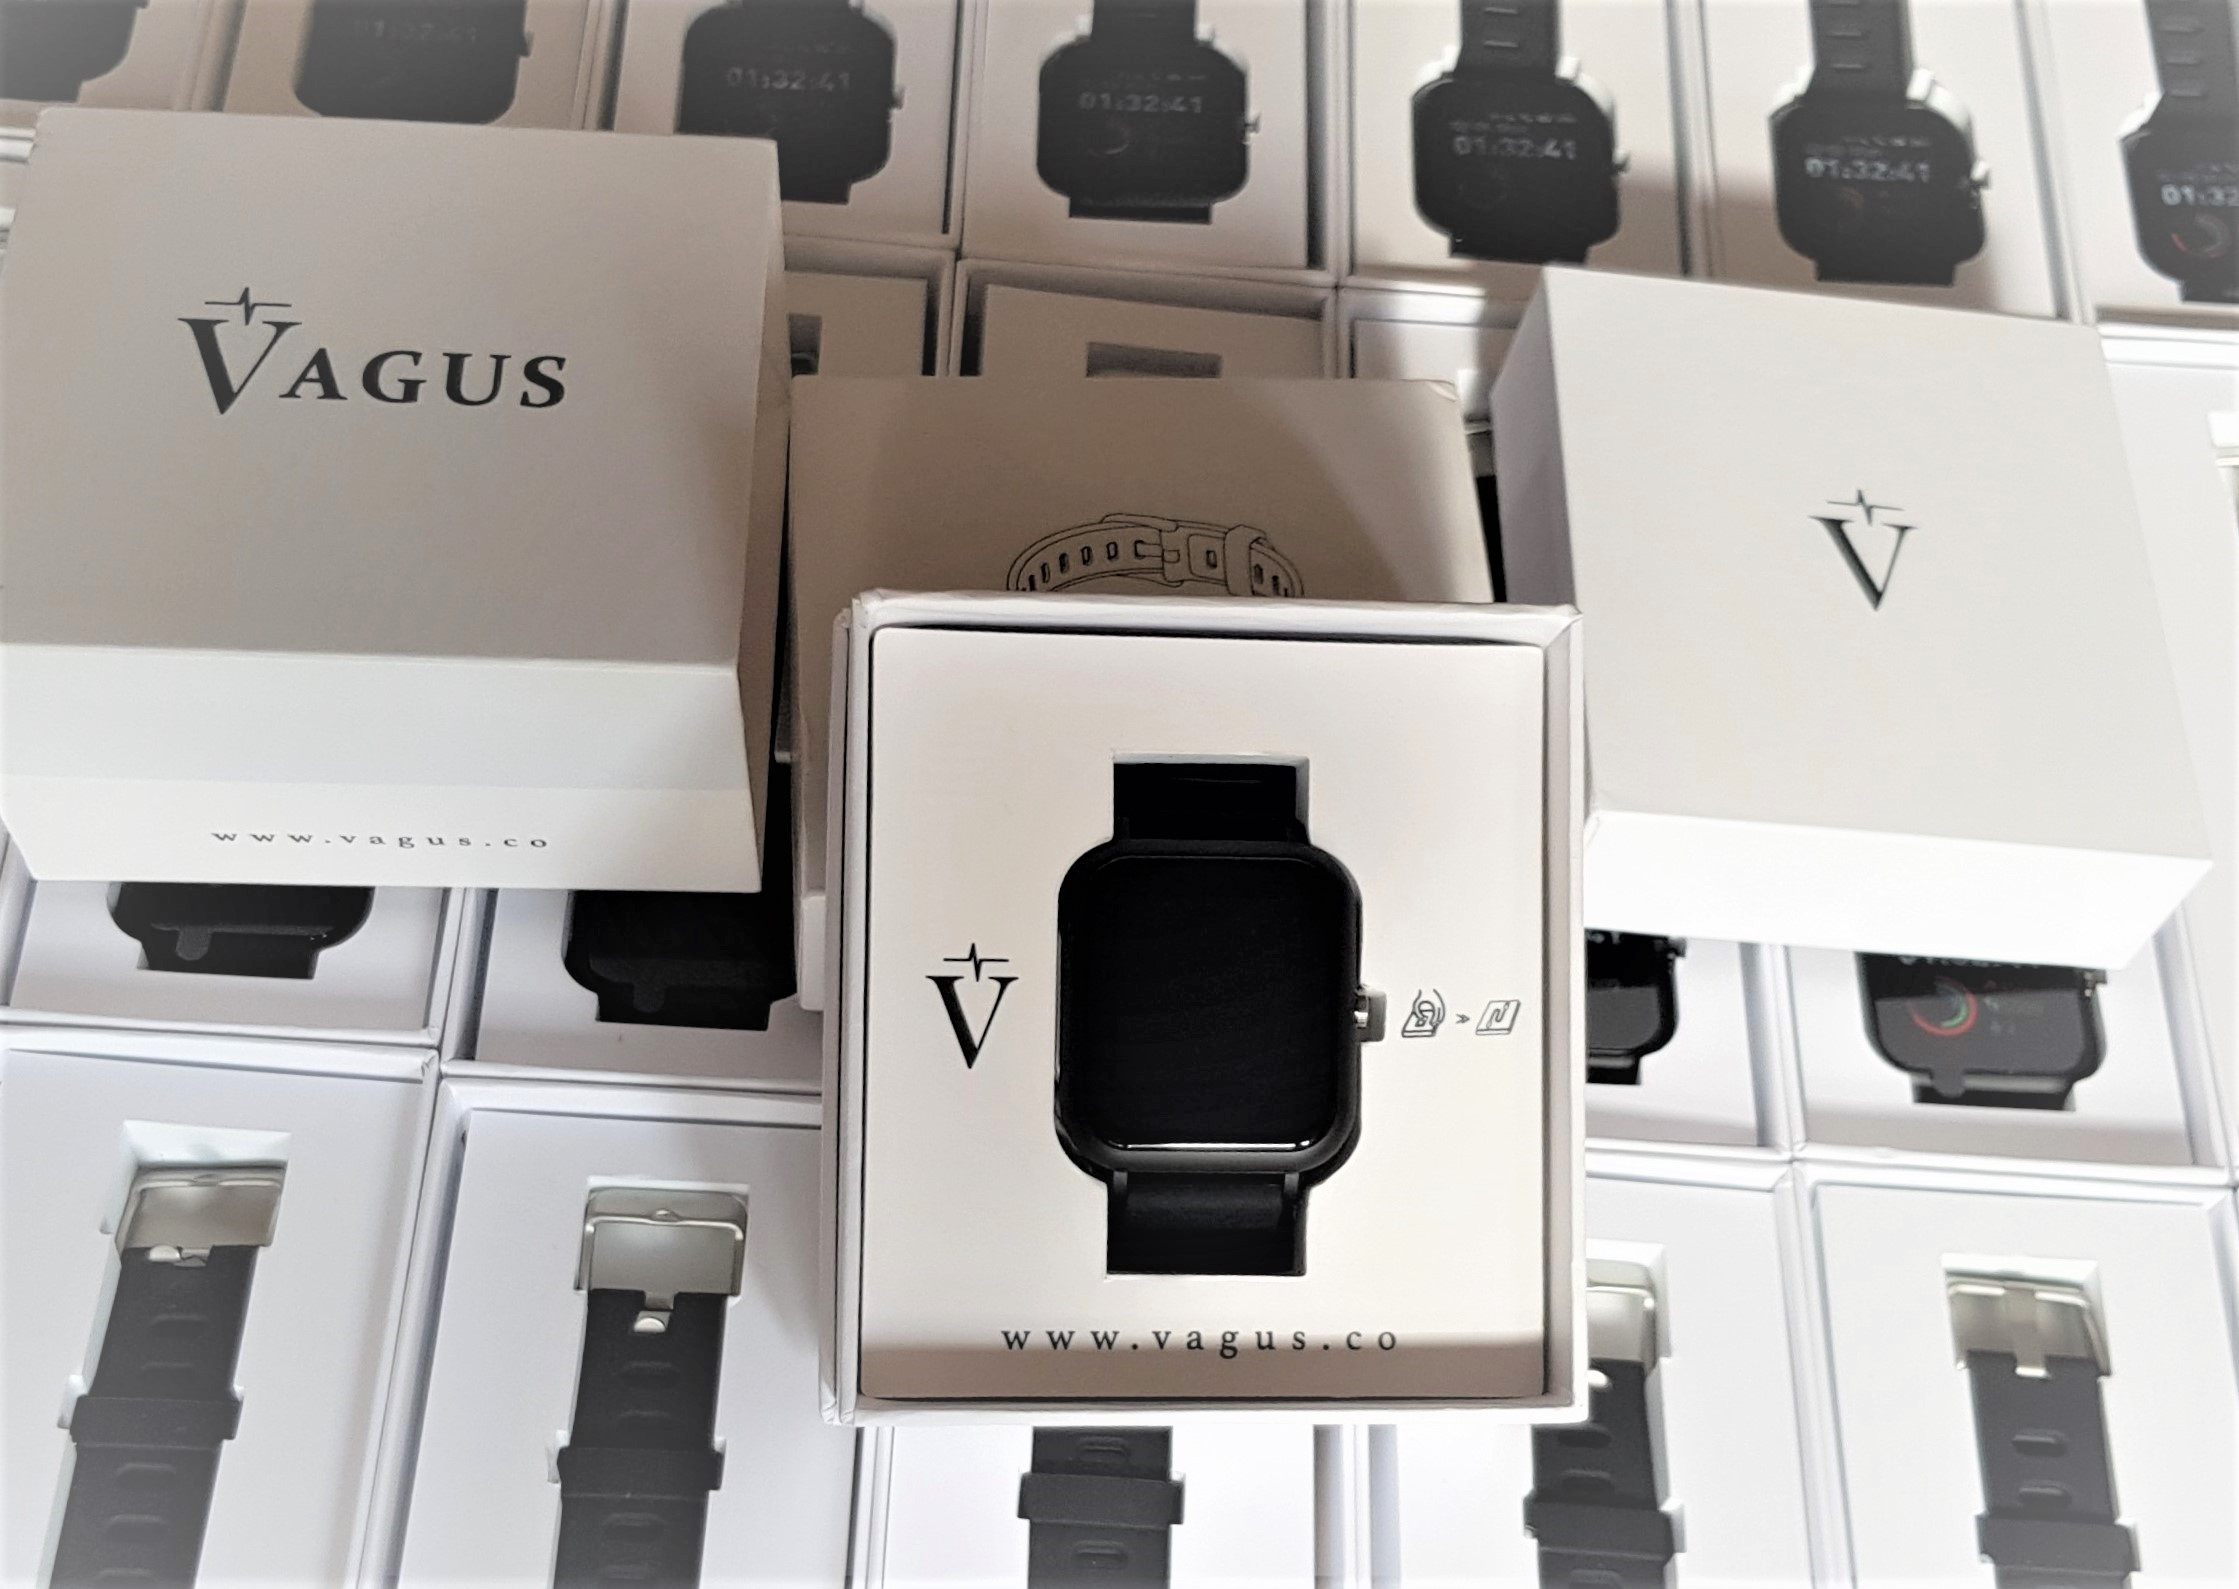 Vagus Watches in stock